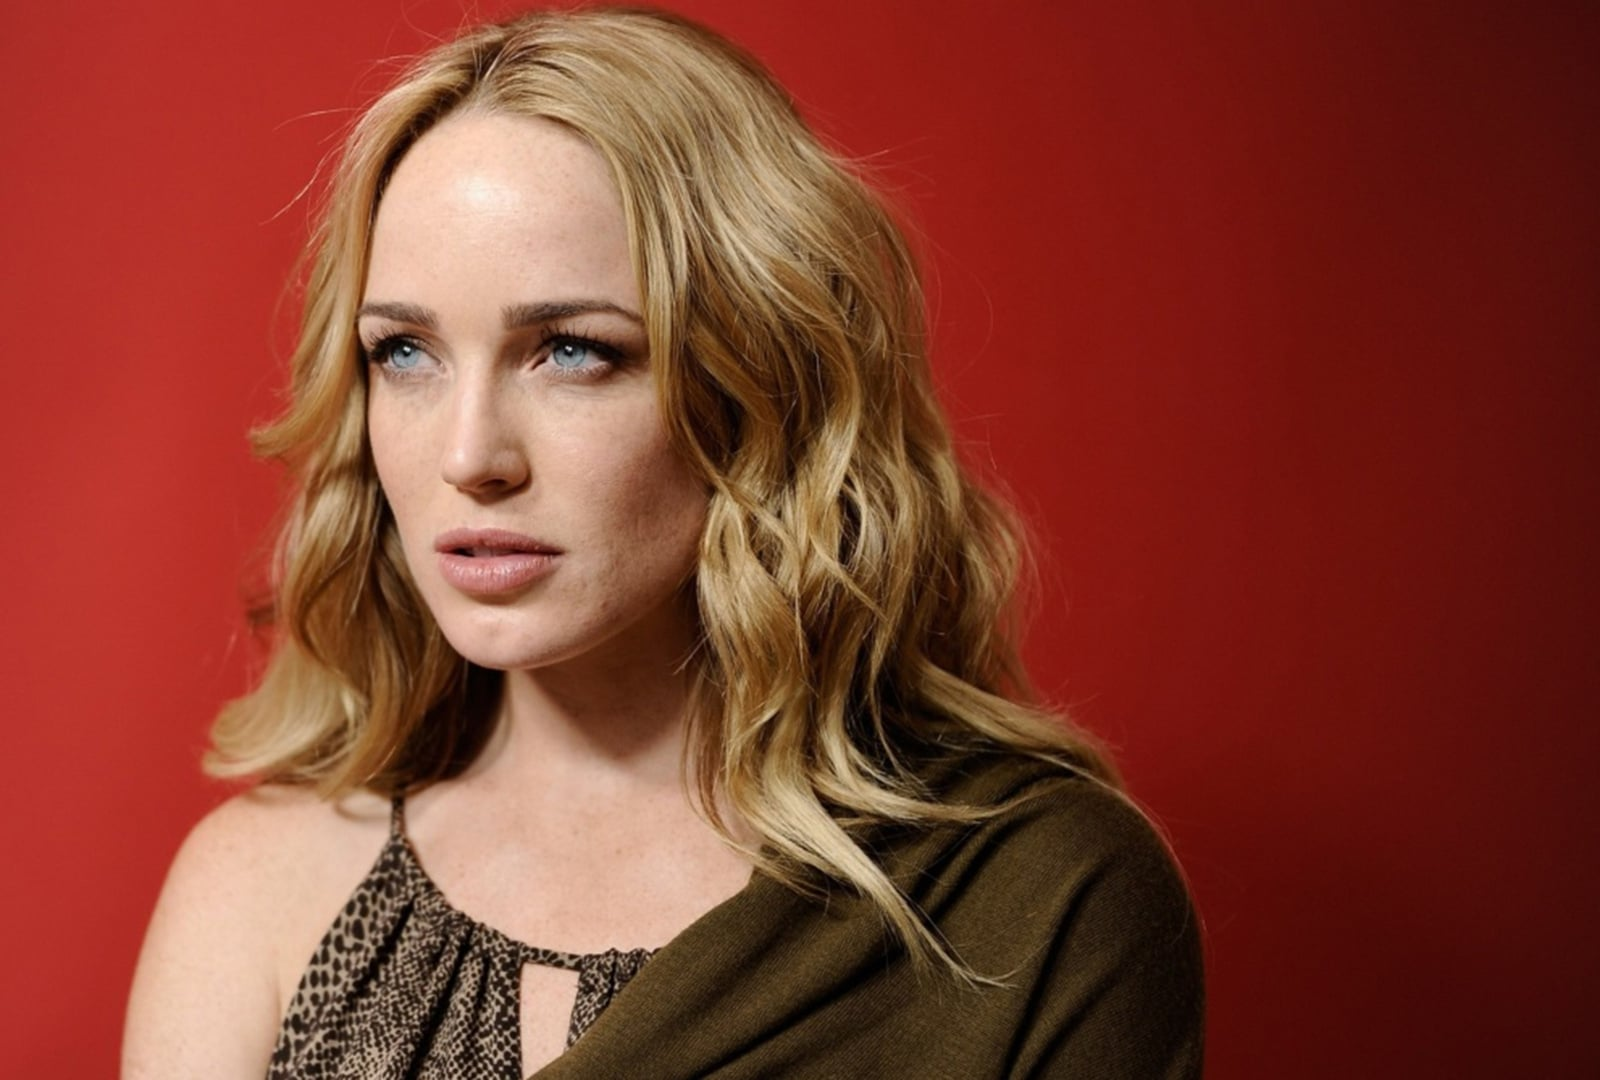 Image of Caity Lotz for iPhone